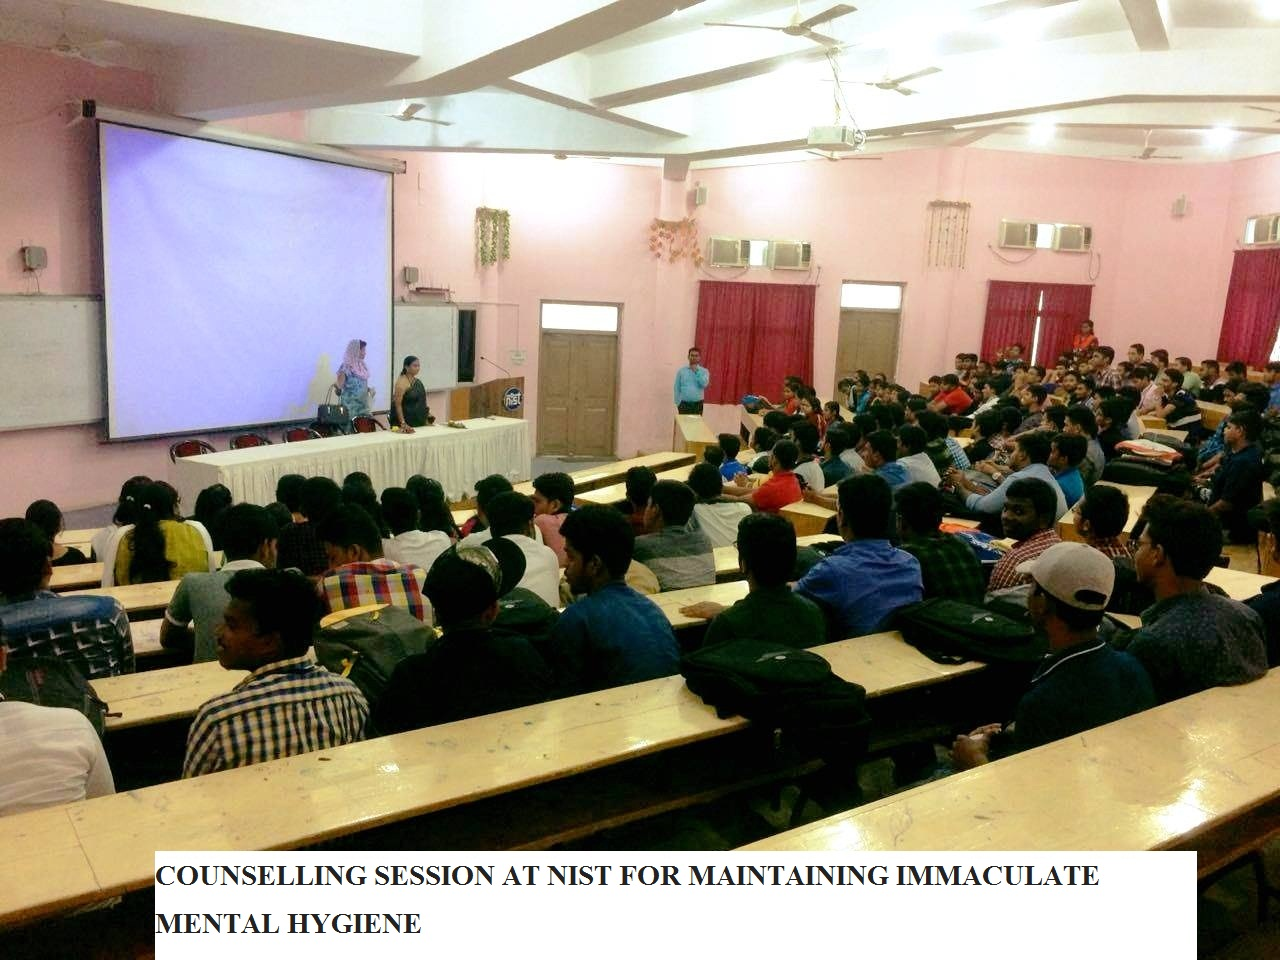 COUNSELLING SESSION AT NIST FOR MAINTAINING IMMACULATE  MENTAL HYGIENE